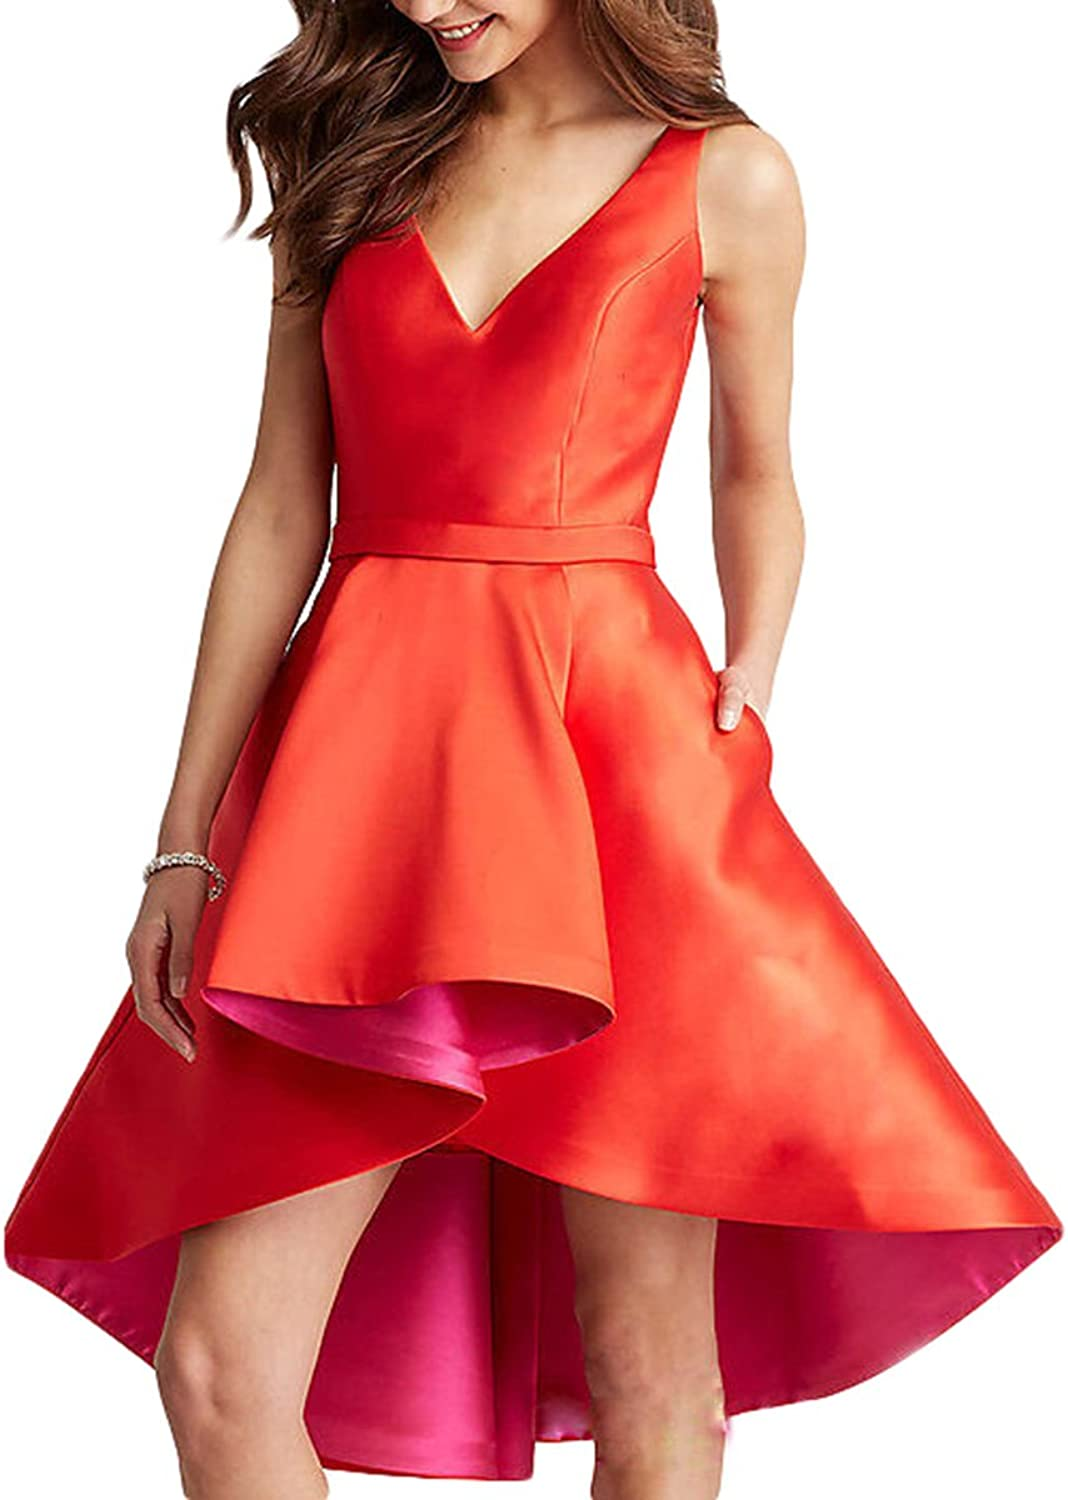 Udresses 2017 VNeck Cocktail Bridesmaid Dress High Low Backless Prom Gowns for Girls UD20